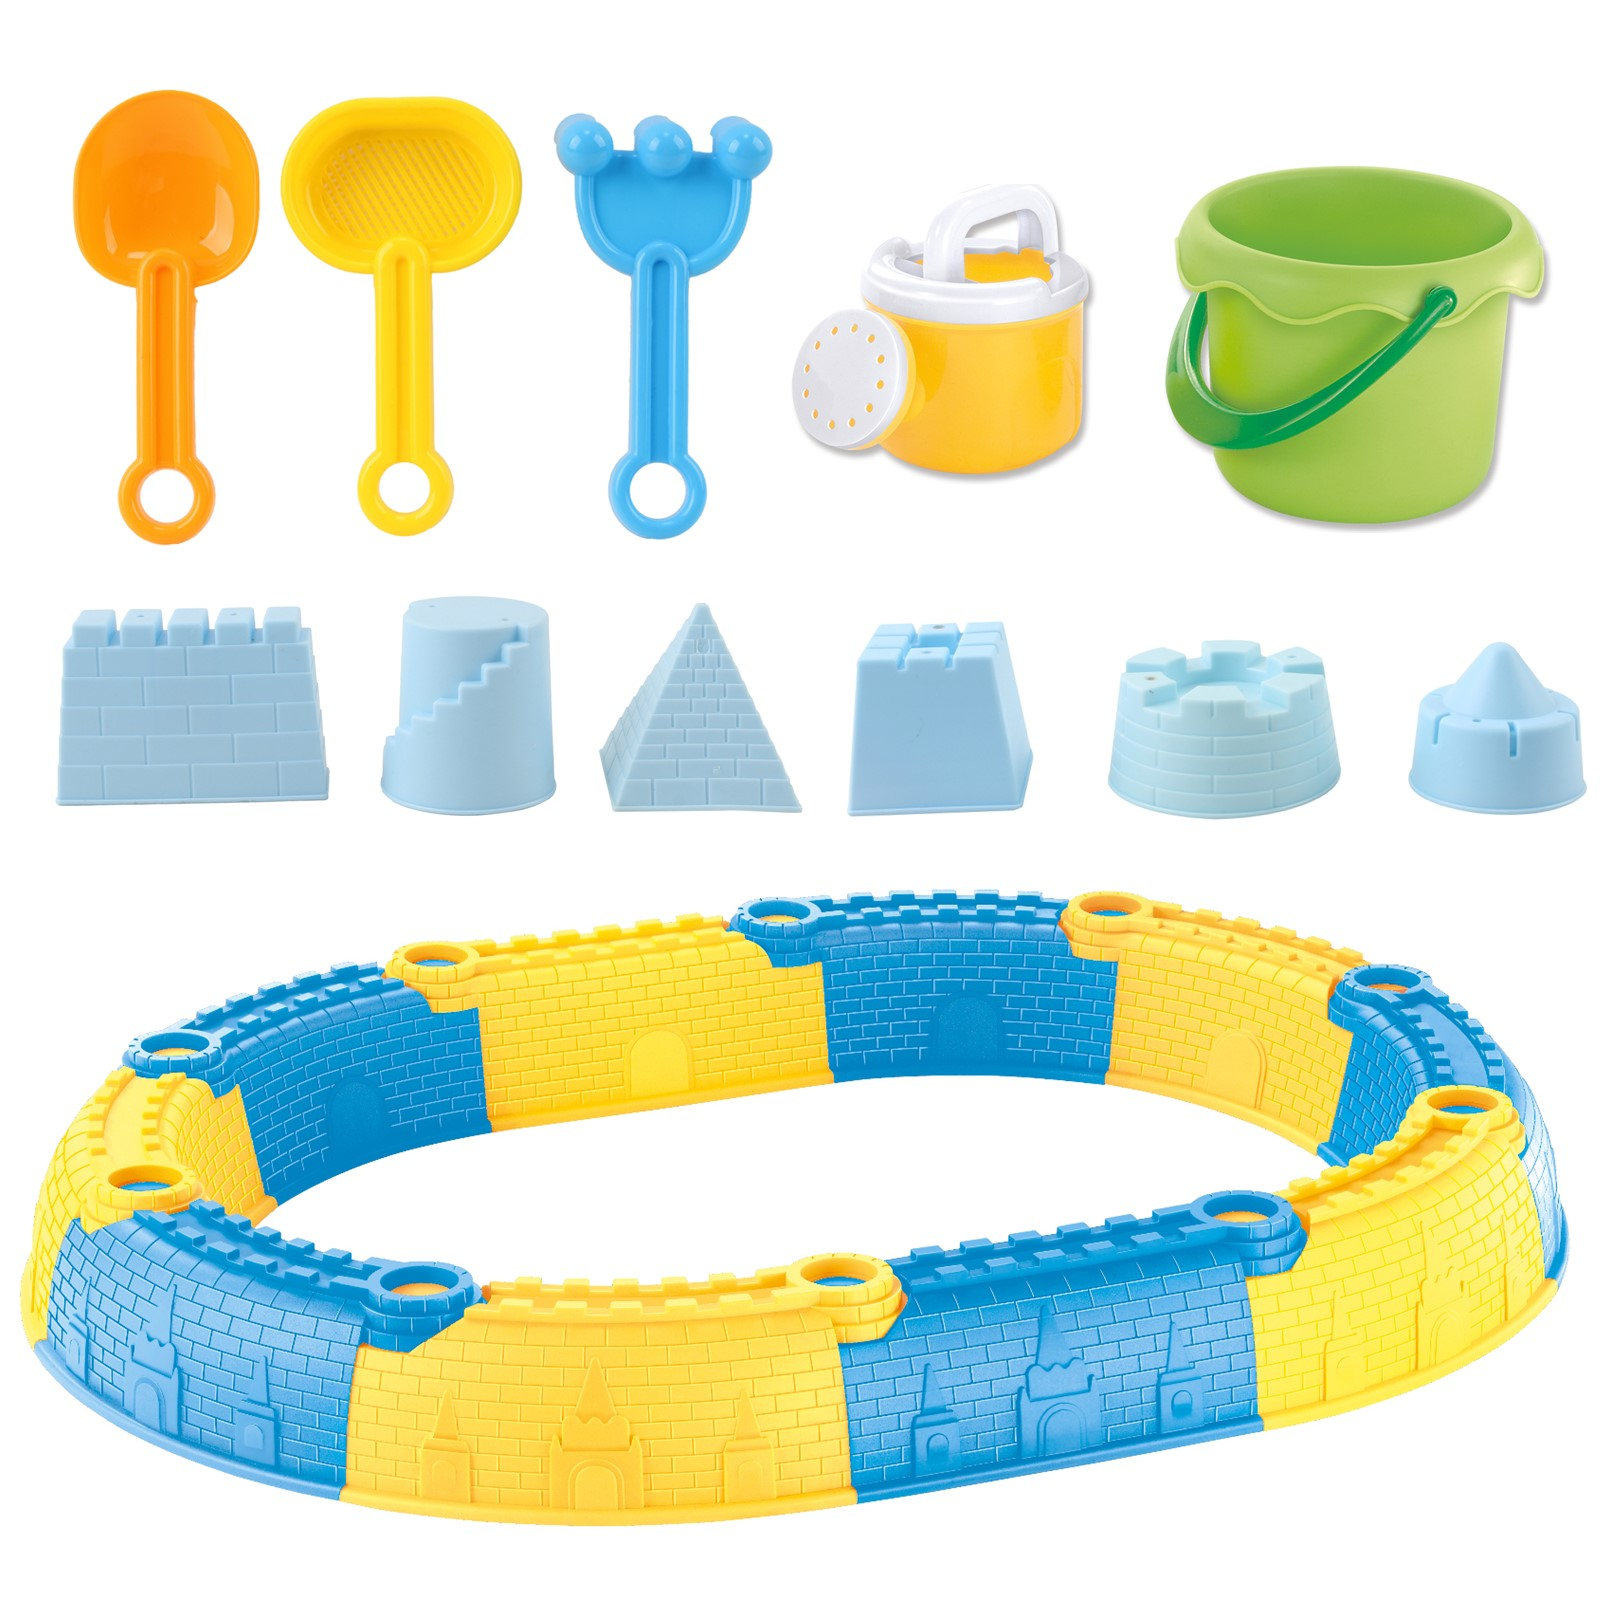 23 Piece Beach Toy Sand Castle Set Includes Molds Tools Bucket Shovel Rake Sifter And Watering Can Perfect For Outdoor Fun Kids Pretend Play Great Gift For Preschool Children Boys Girl Toddlers